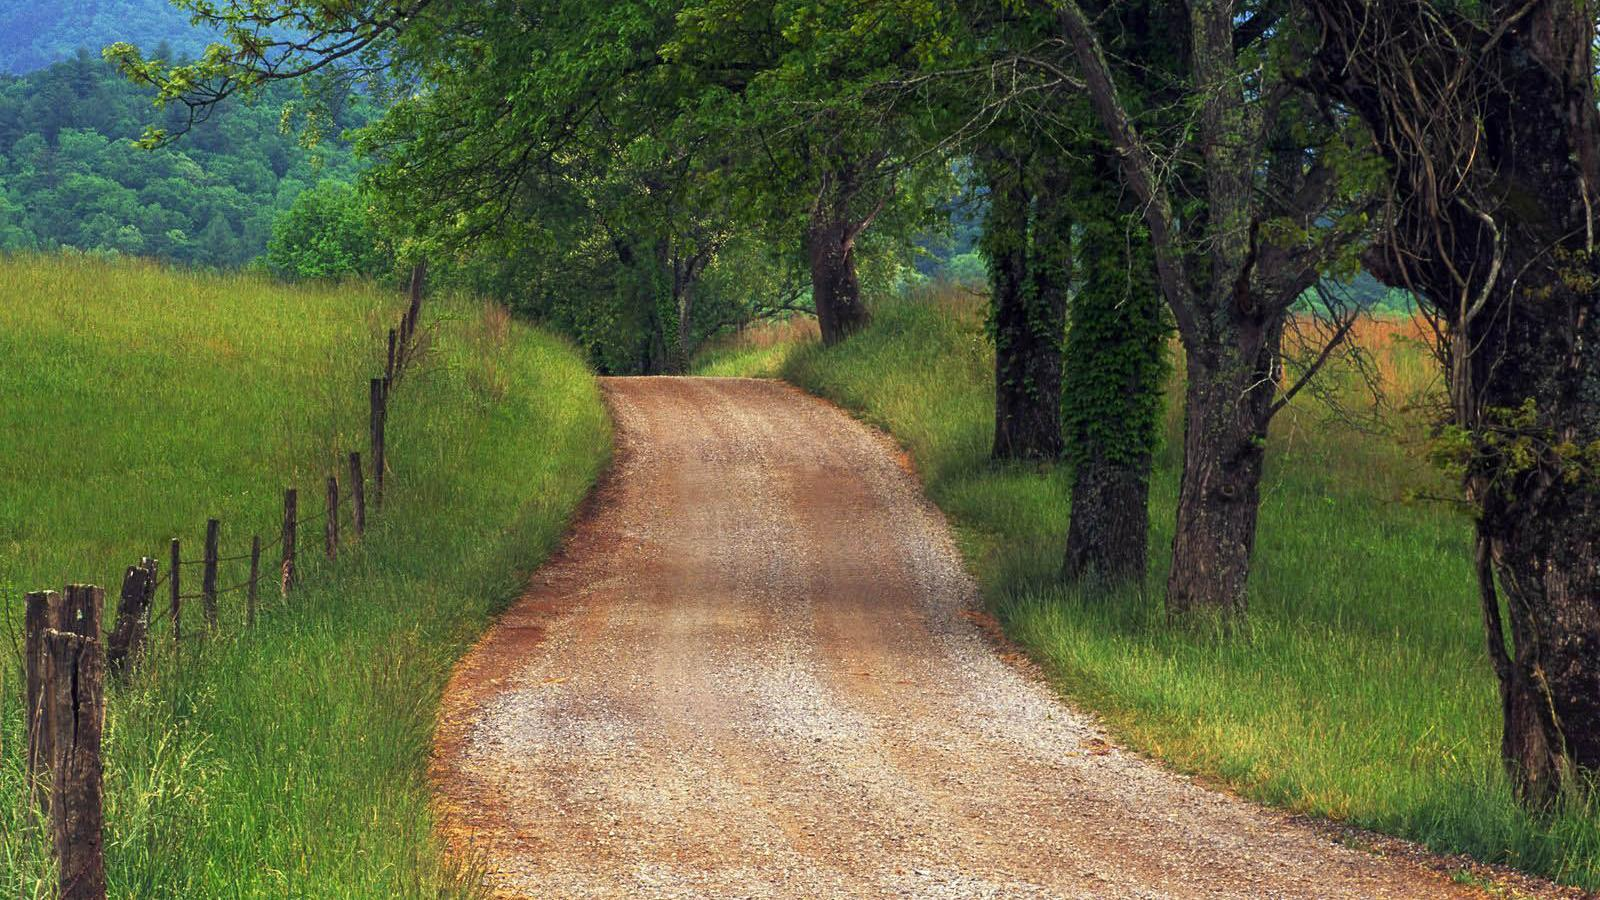 Cades Cove Tennessee 1600 x 900 widescreen Desktop wallpapers and 1600x900